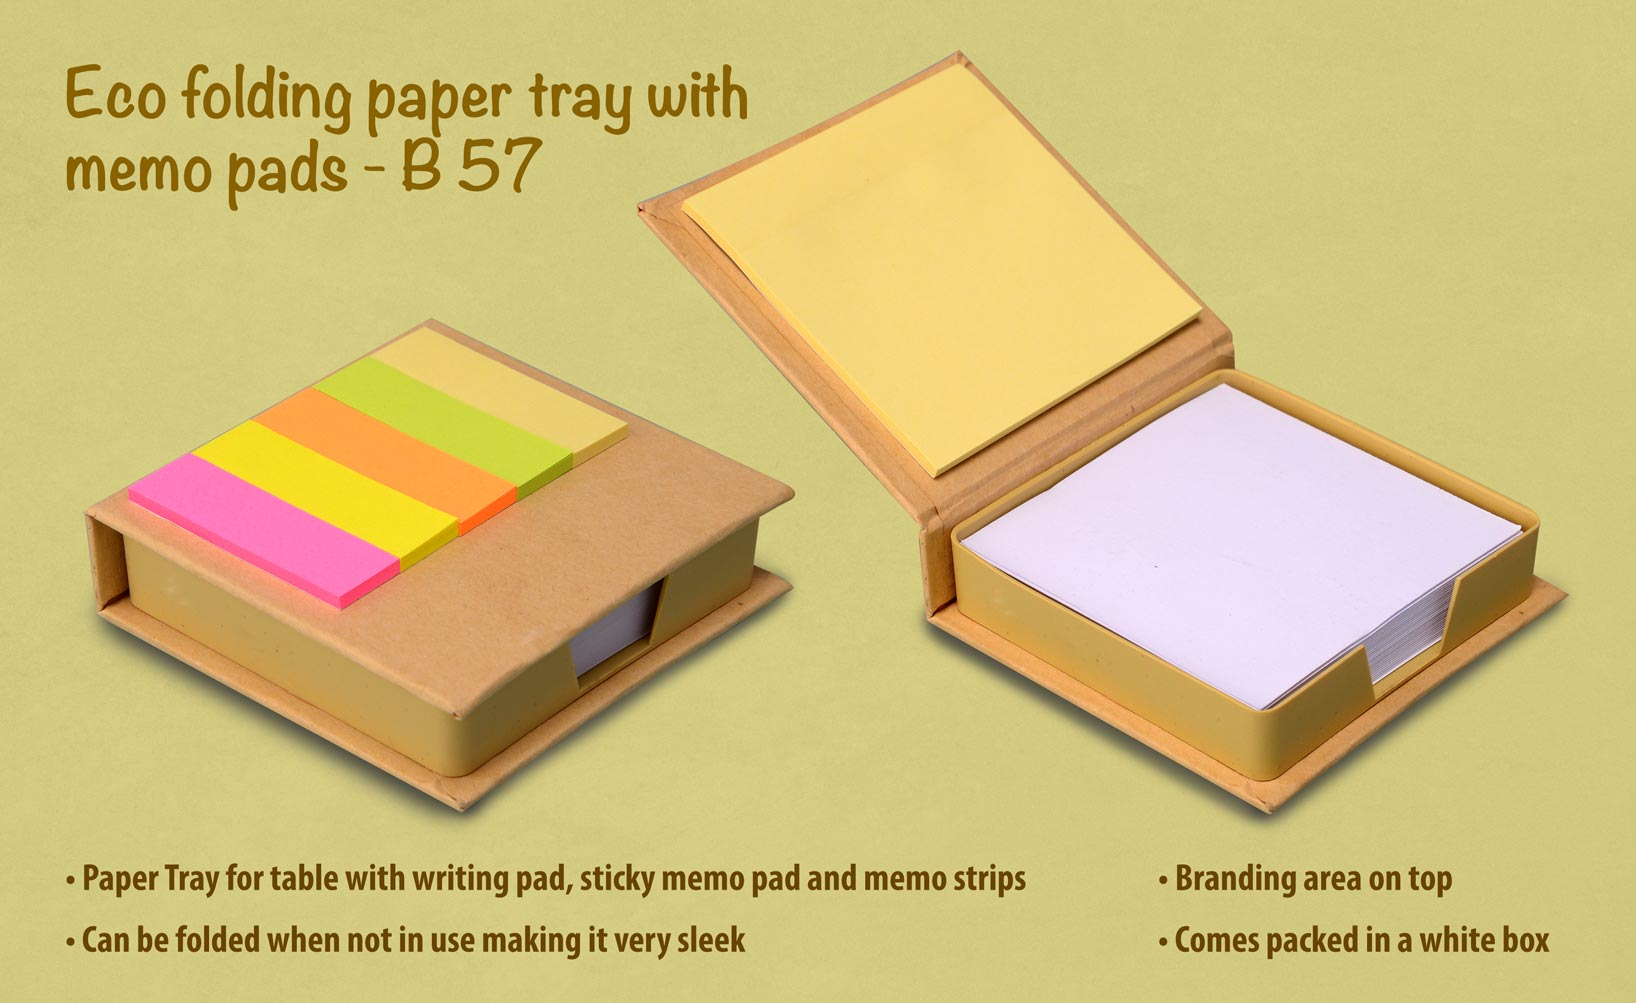 B57 - Eco folding paper tray with memo pads